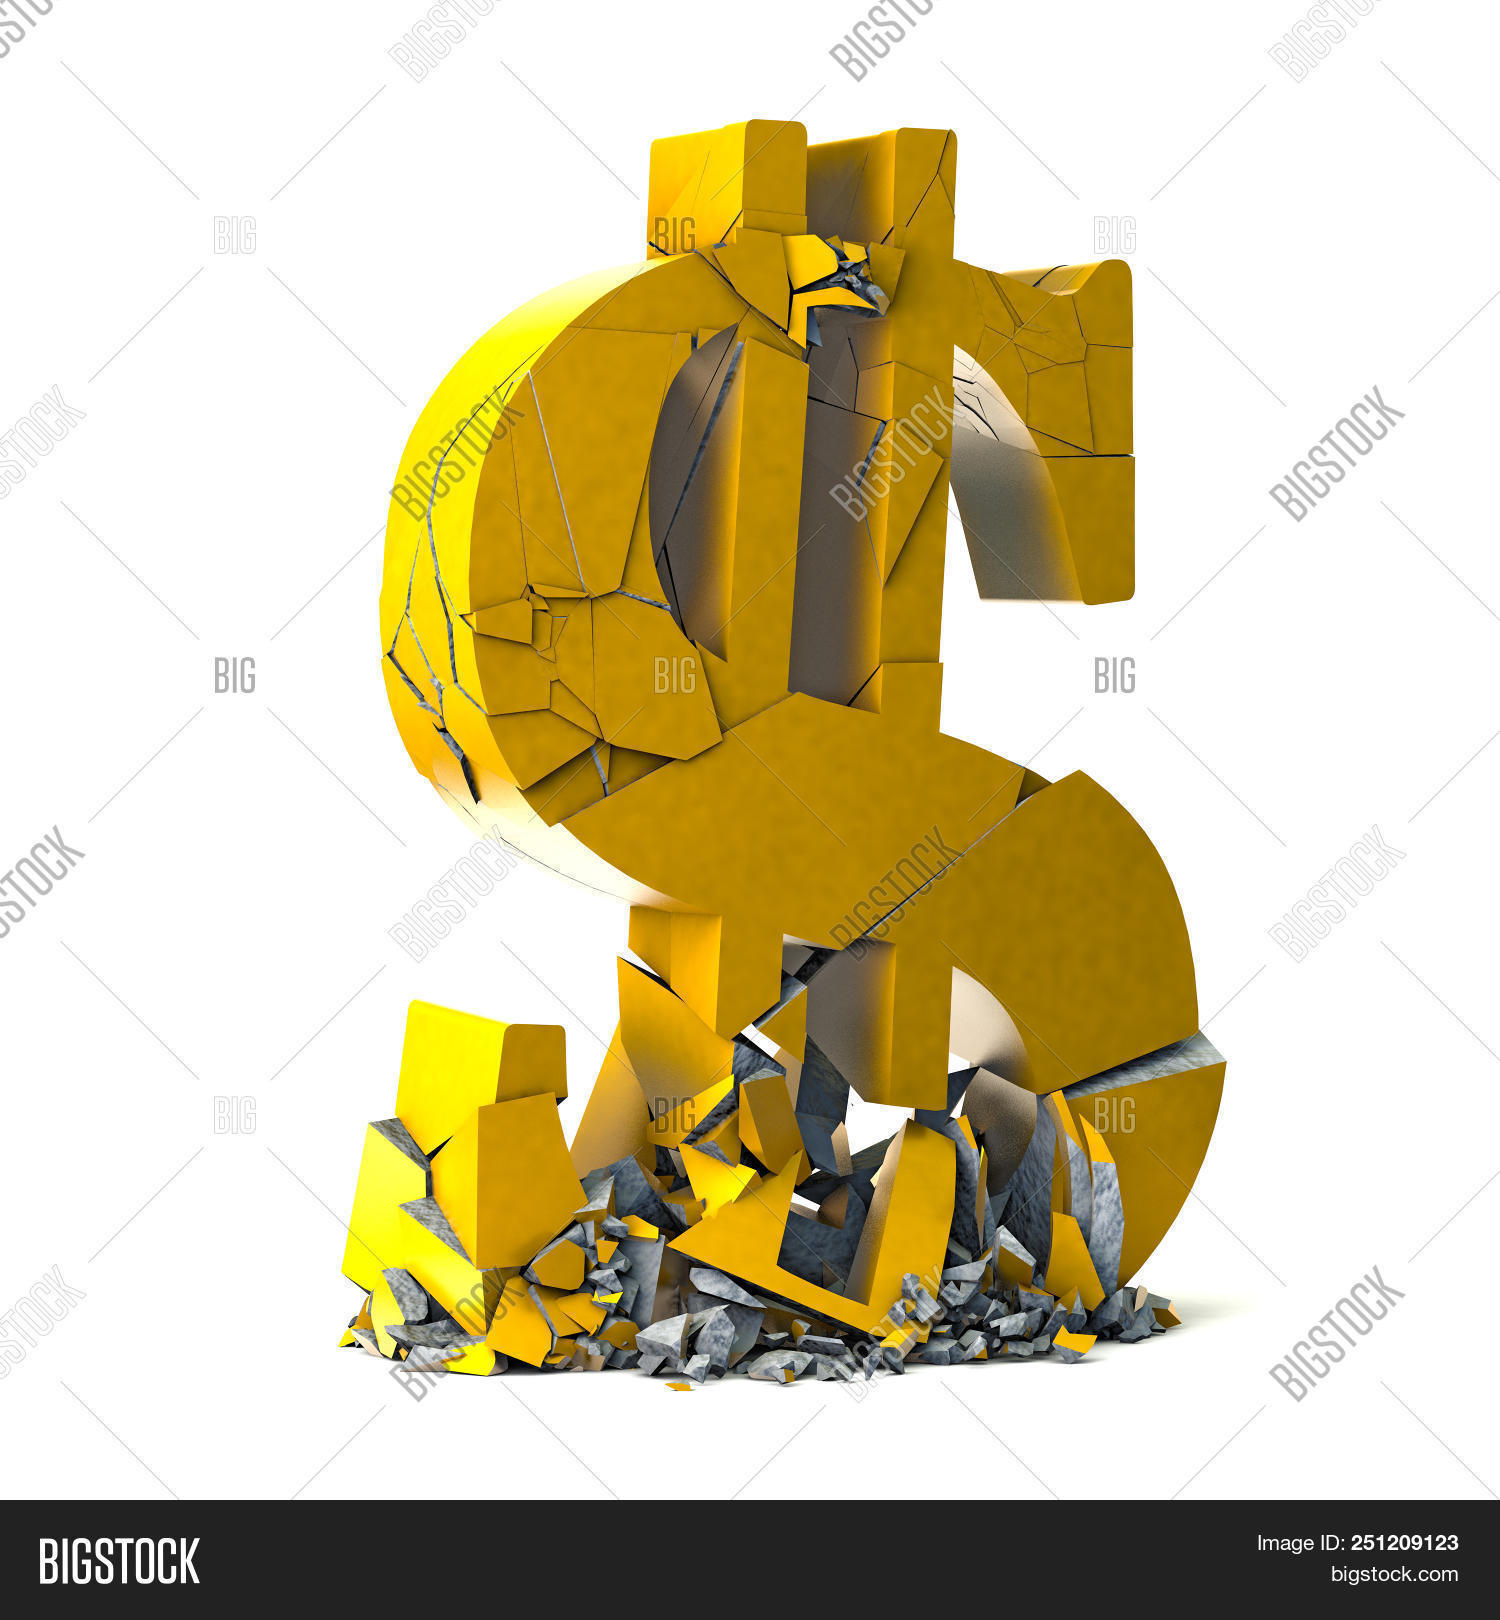 Concept Bank Finance Image Photo Free Trial Bigstock